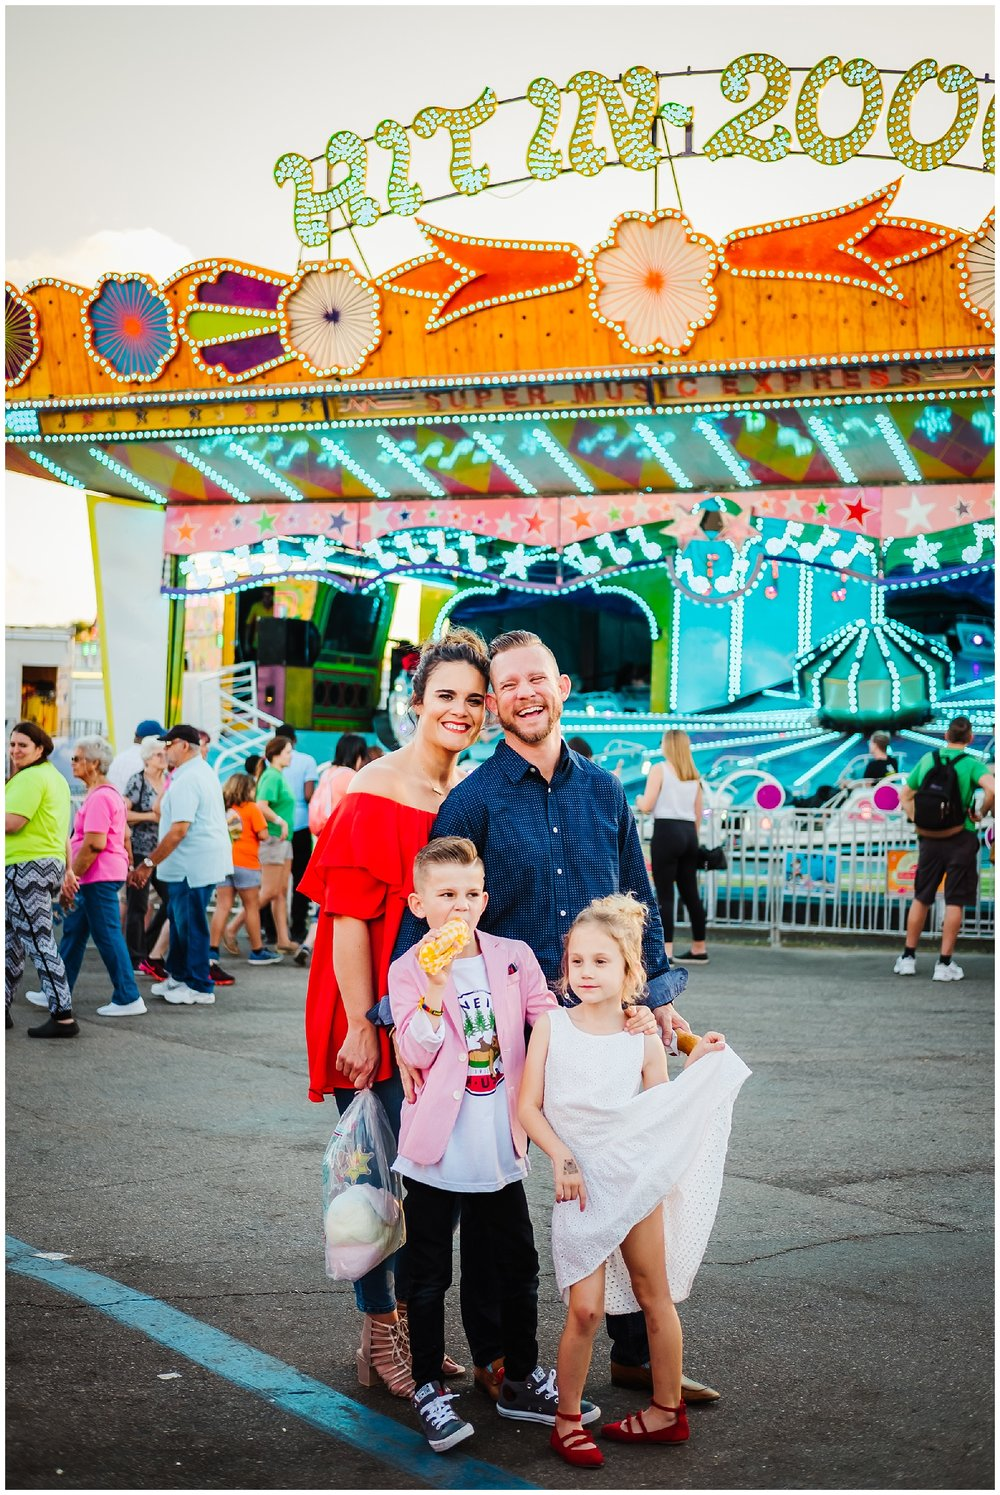 Tampa-colorful-fair-amusement park-family session_0026.jpg